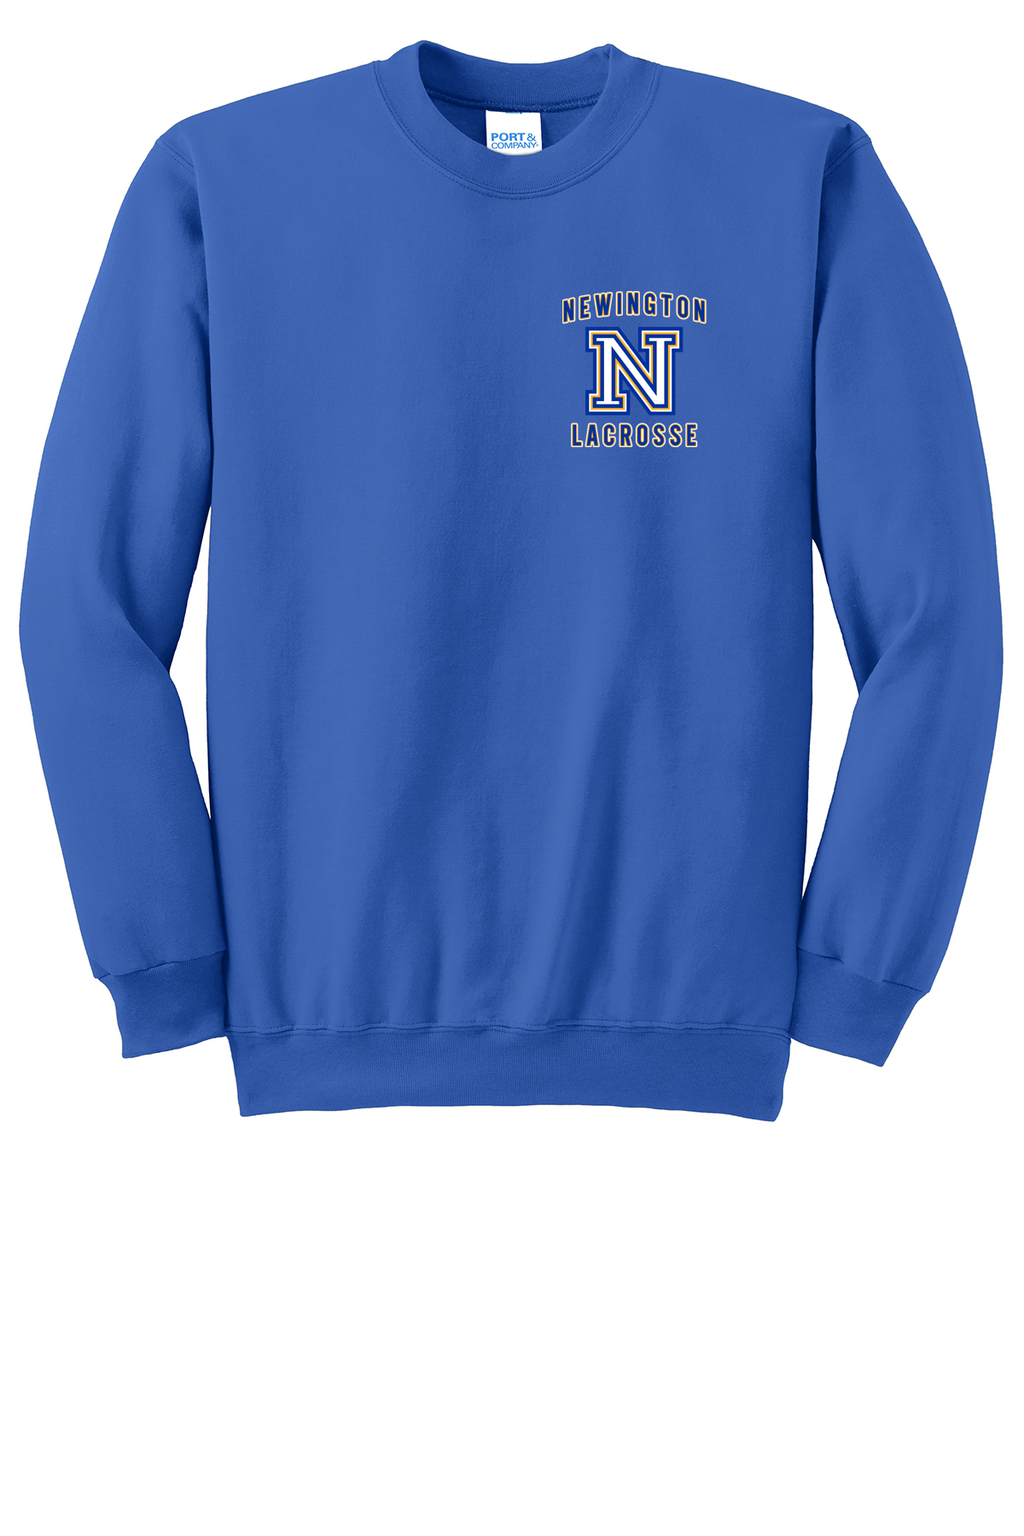 Newington Lacrosse Royal Crew Neck Sweatshirt